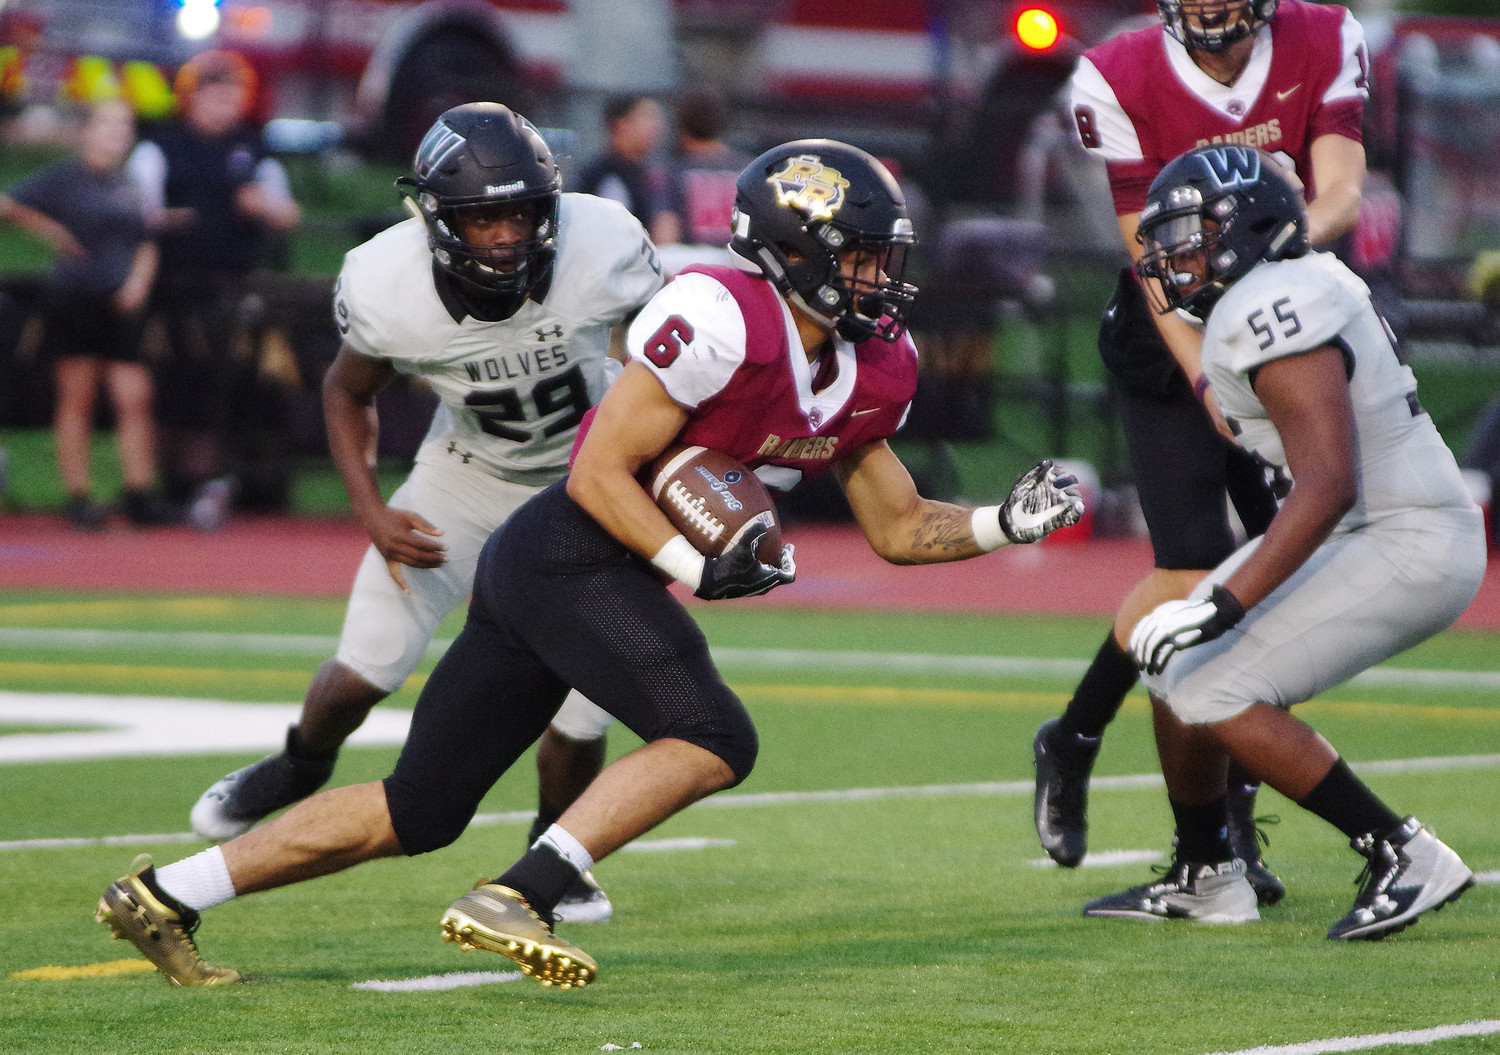 Rouse High School running back Tavian Tate (6) breaks through against Weiss at Bible Stadium on September 13, 2018